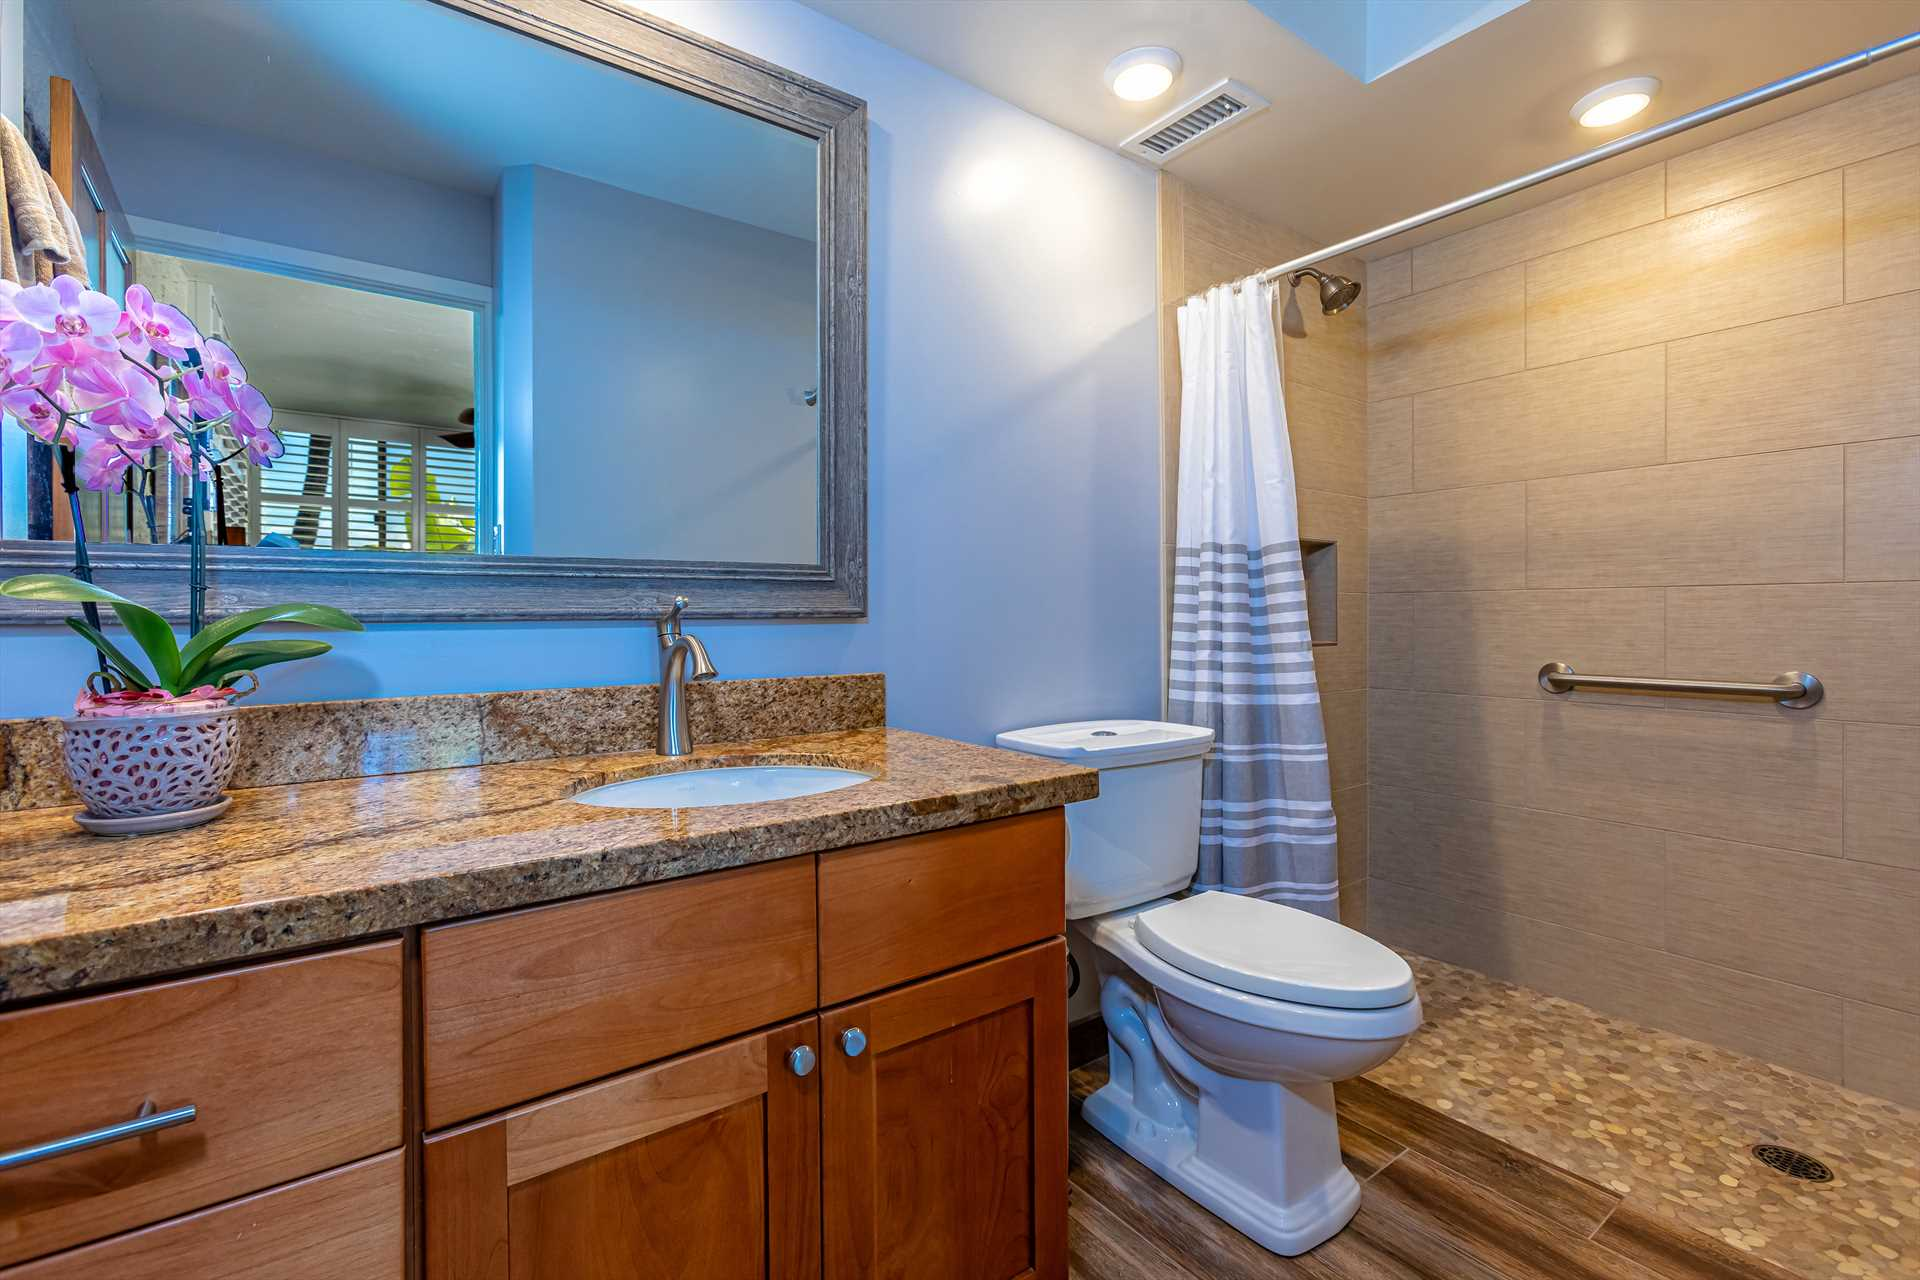 1st bathroom with roll-in shower for wheelchair access